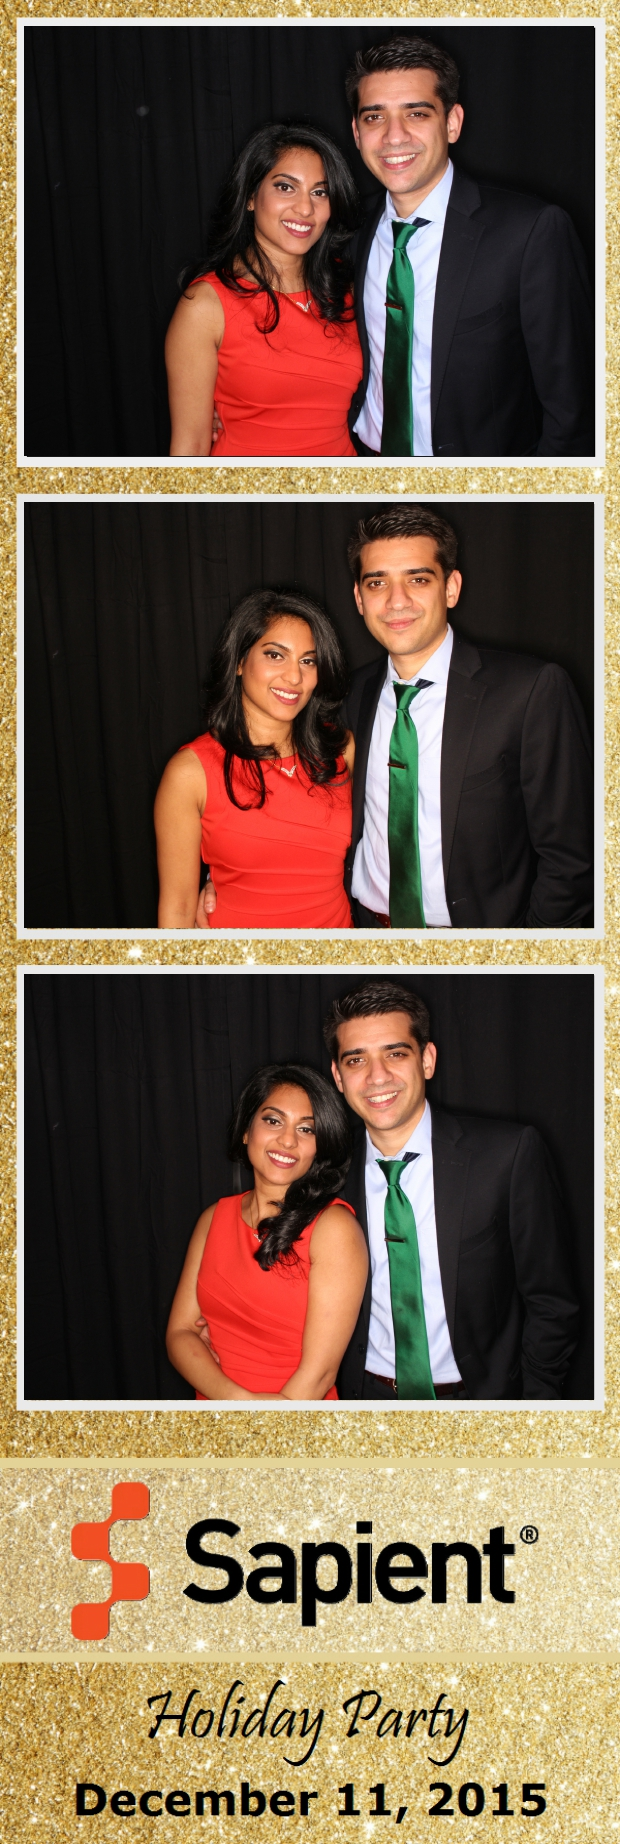 Guest House Events Photo Booth Sapient Holiday Party (99).jpg